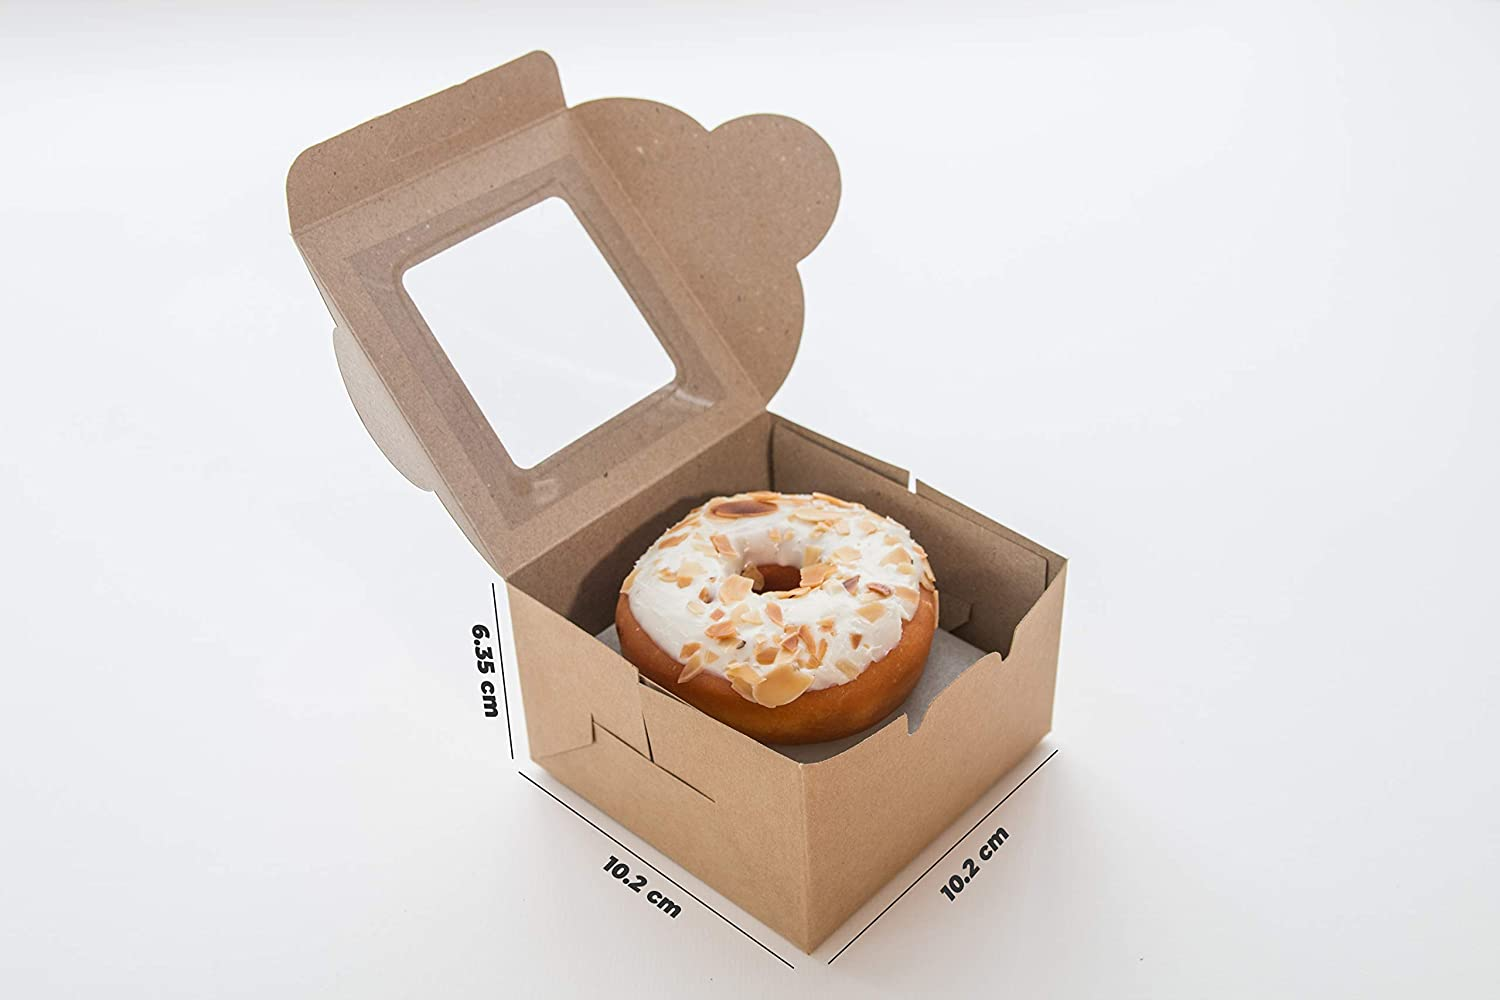 Brown Bakery Box with Window Party Box Cookies Donuts Bonus Hemp Rope Size 4x4x2.5 Inches Cake Box Made in Vietnam Small Treat Boxes Cupcake Pack 25 Perfect Size for Mini Cake